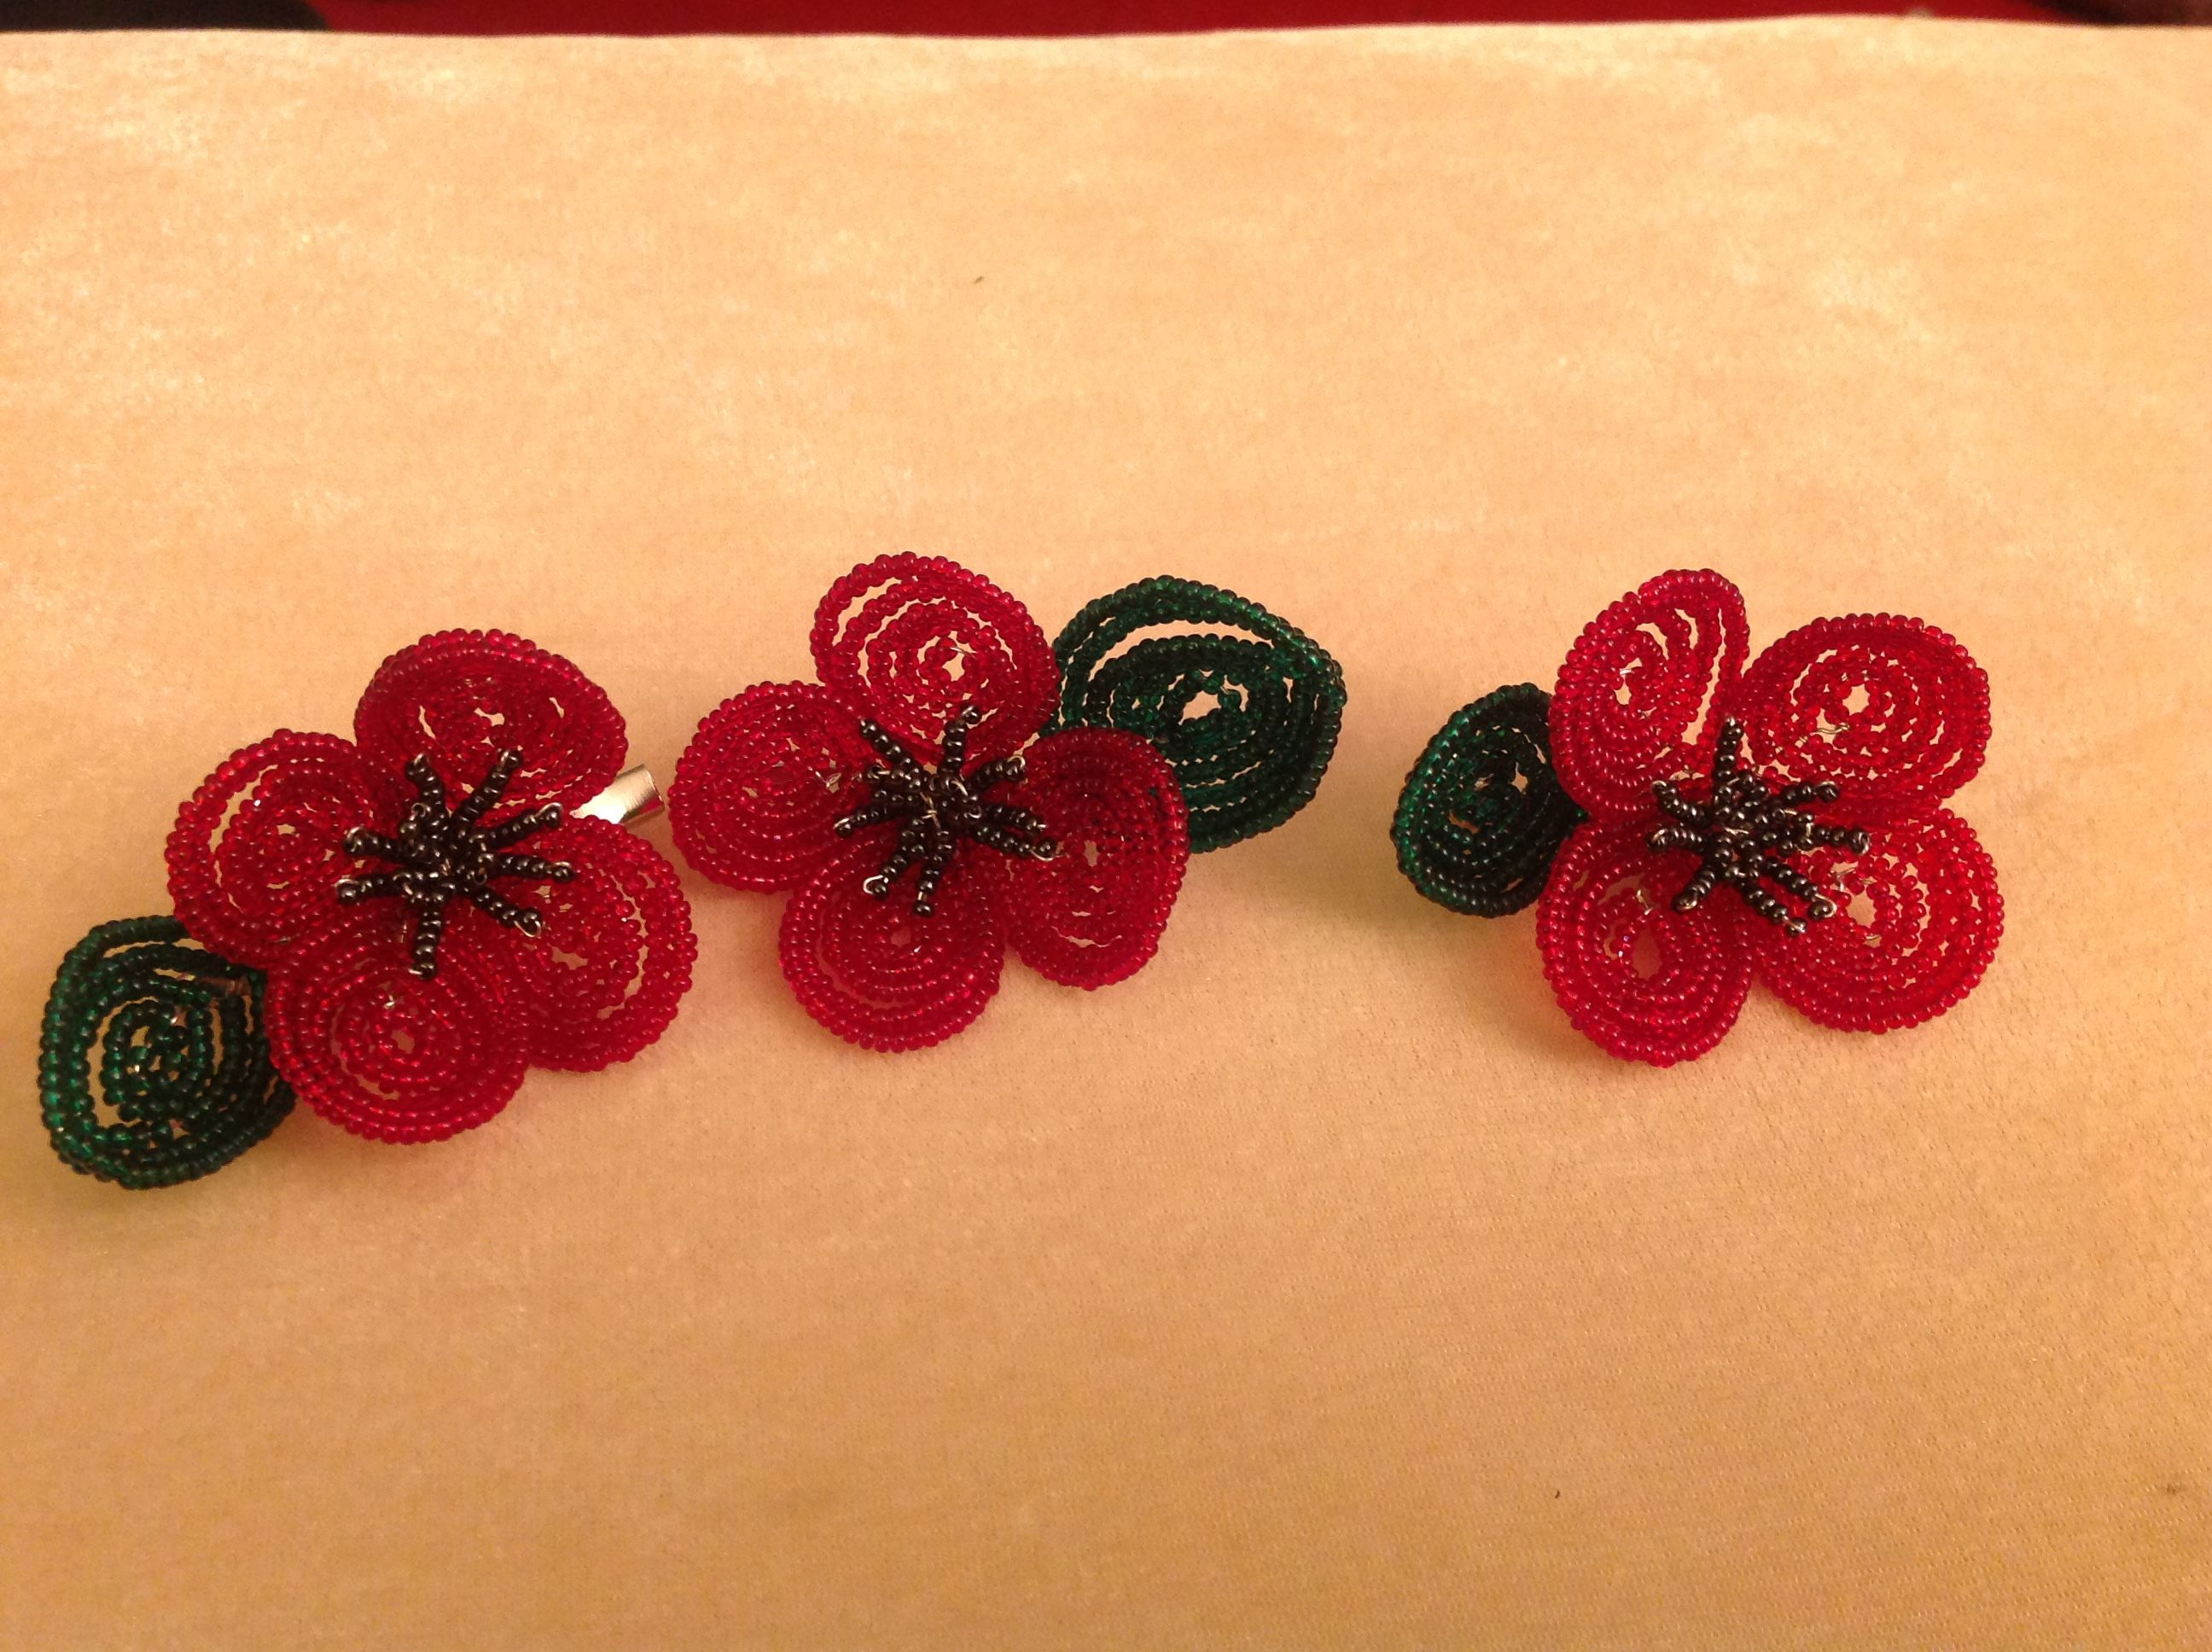 My first go at French Beading. I will make some more to sell to support the poppy appeal.